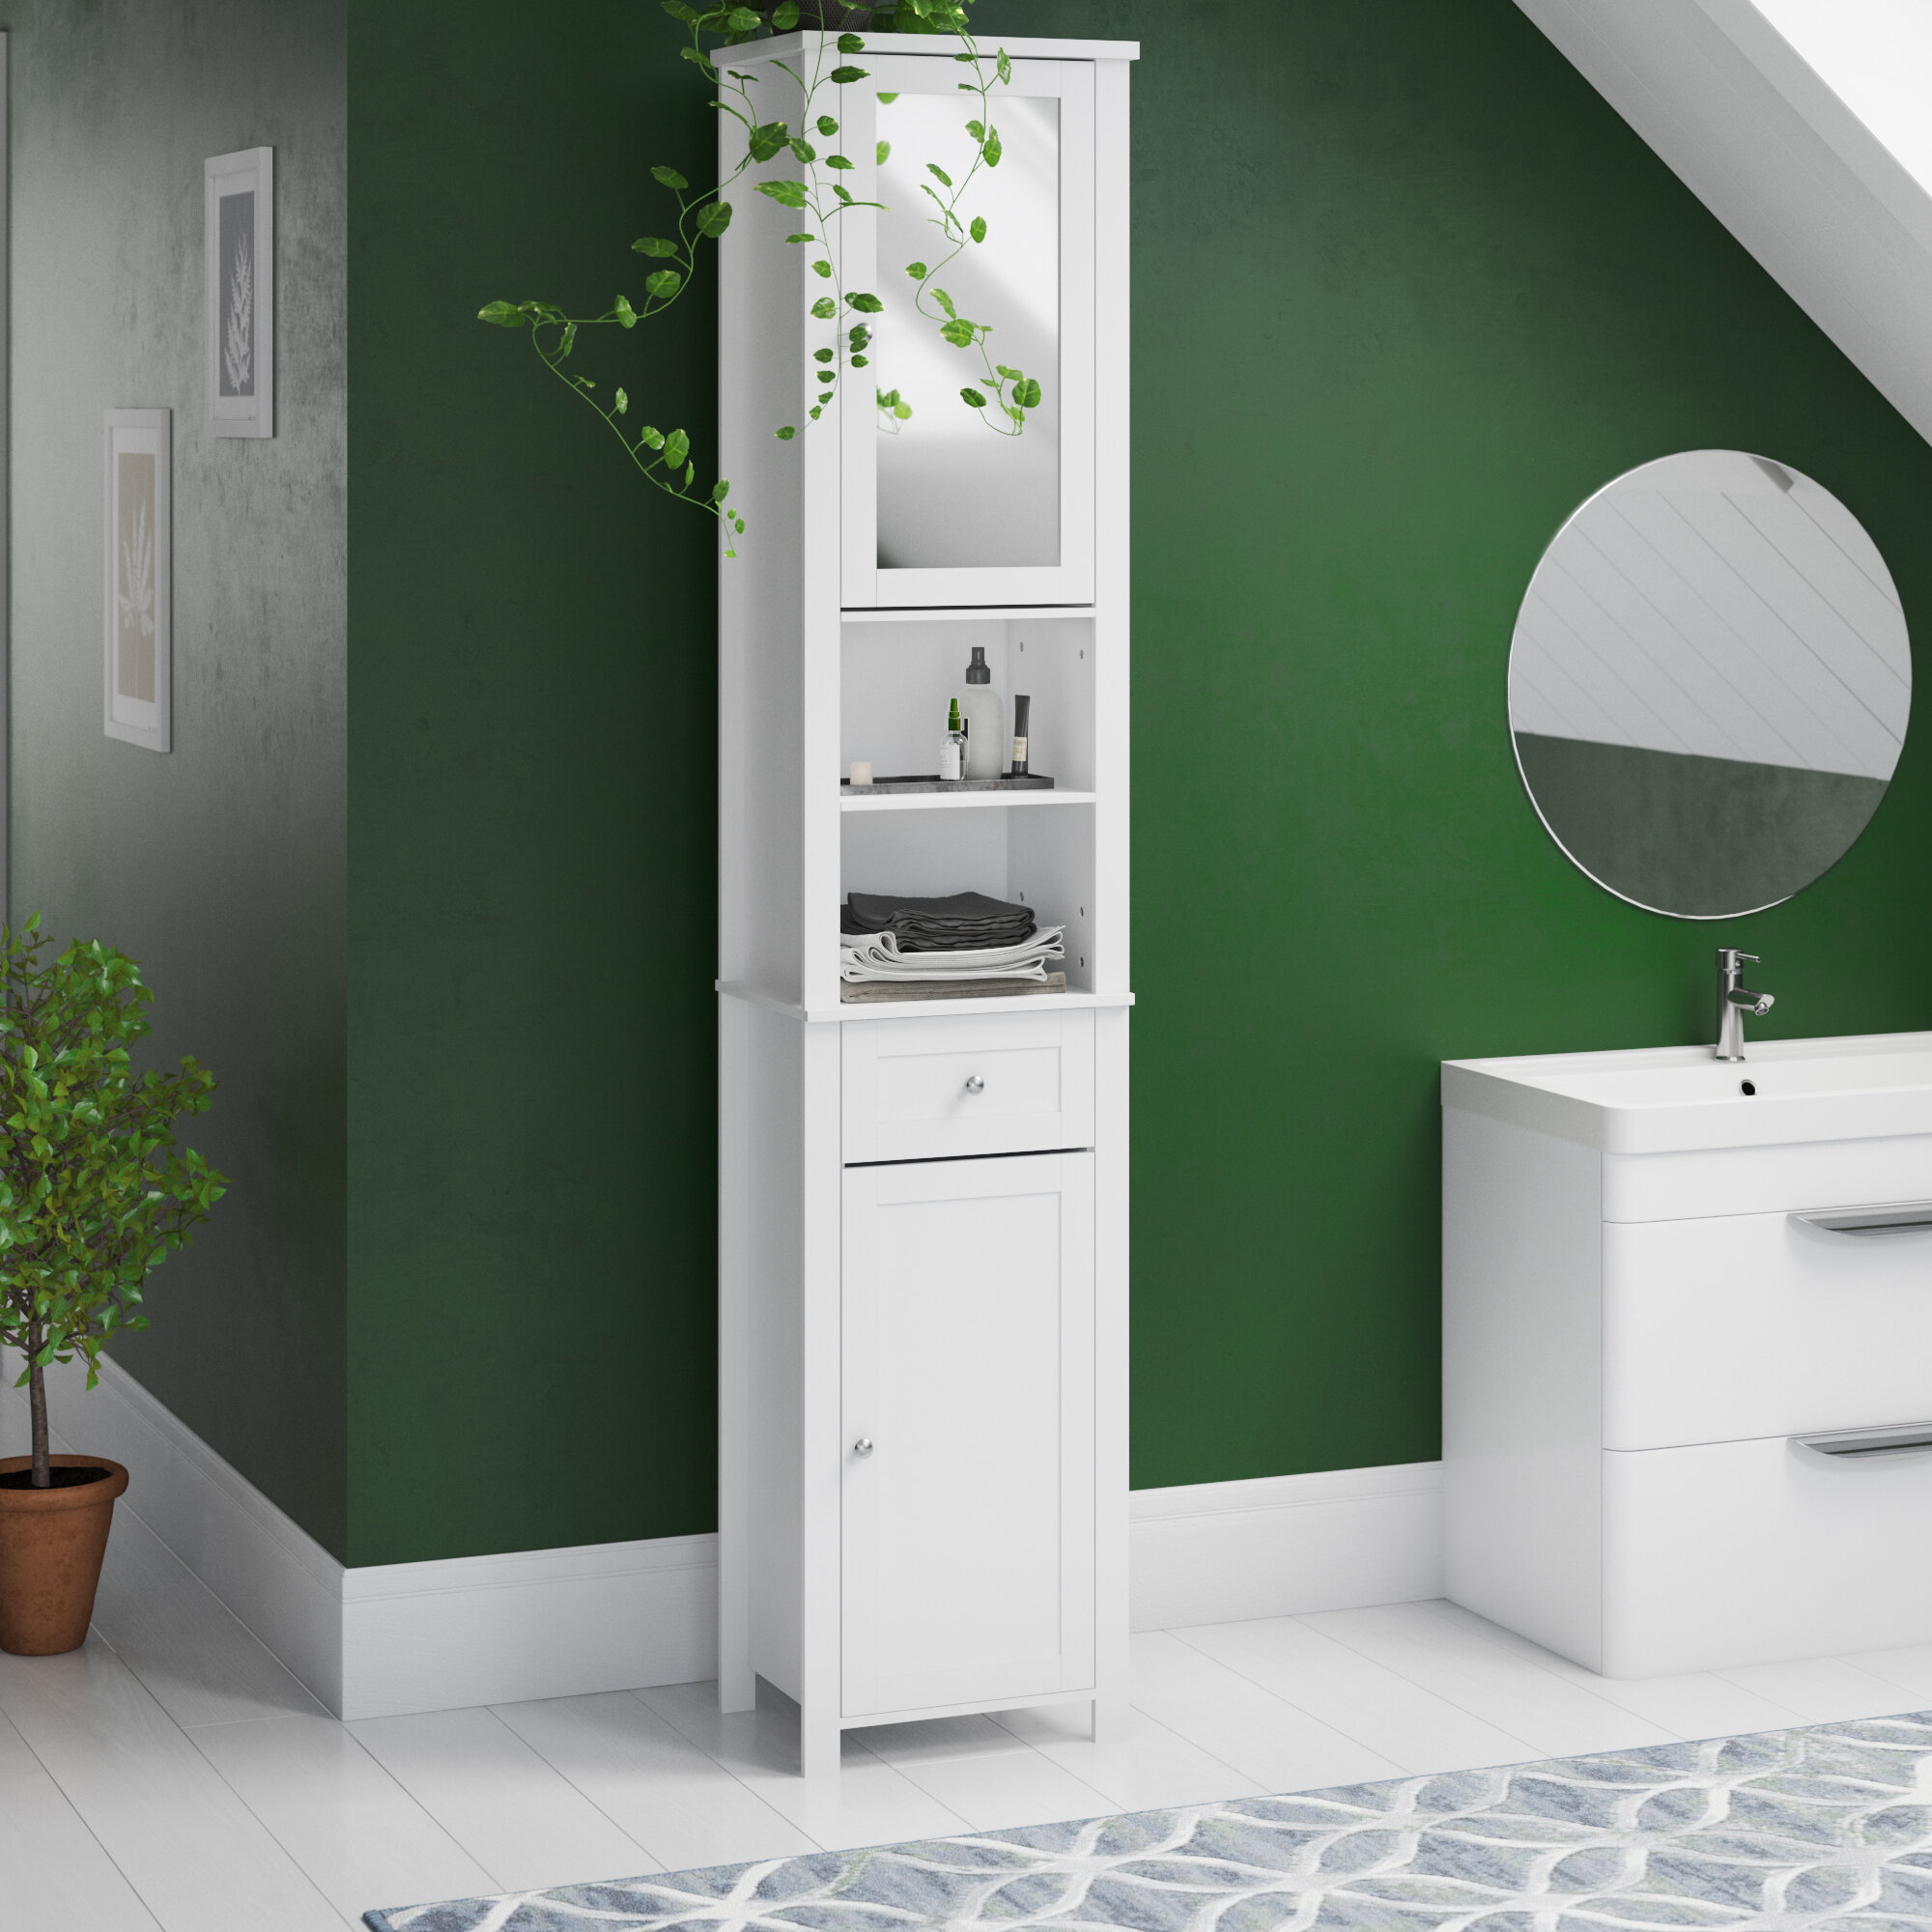 Free Standing Tall Bathroom